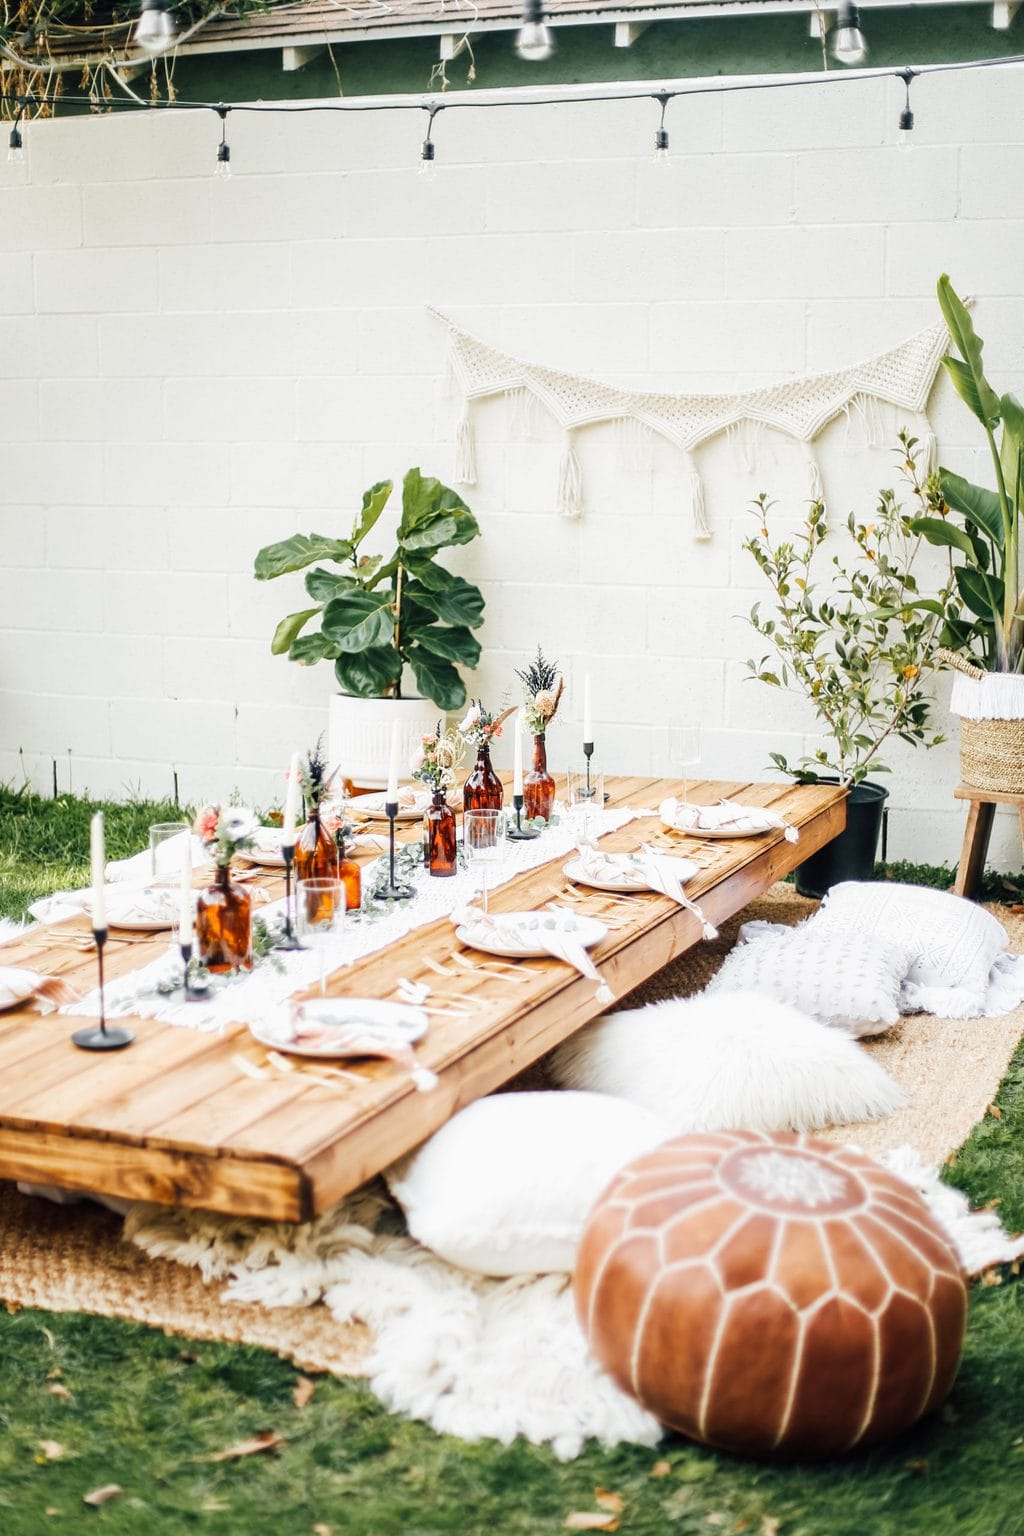 A dinner party setup in the middle of the backyard with plates, glassware and pillows as seats.